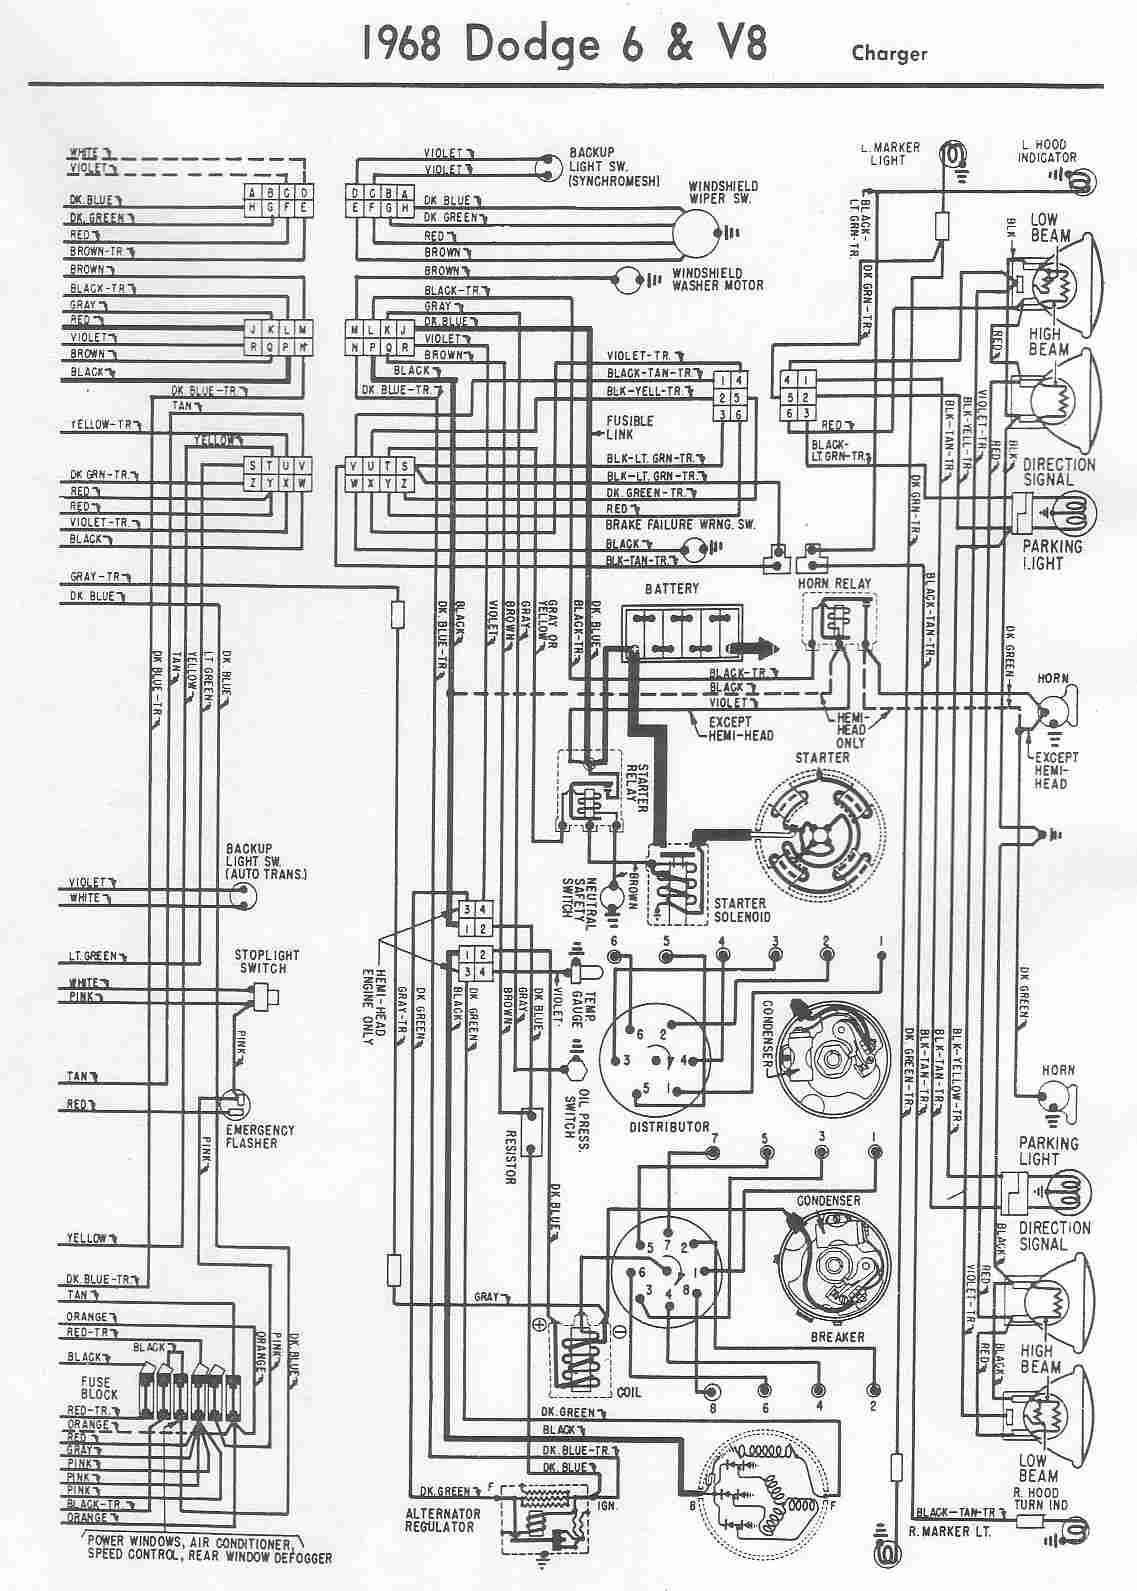 70 dodge wiring diagram get free image about wiring diagram wiring rh instafollowersboost us